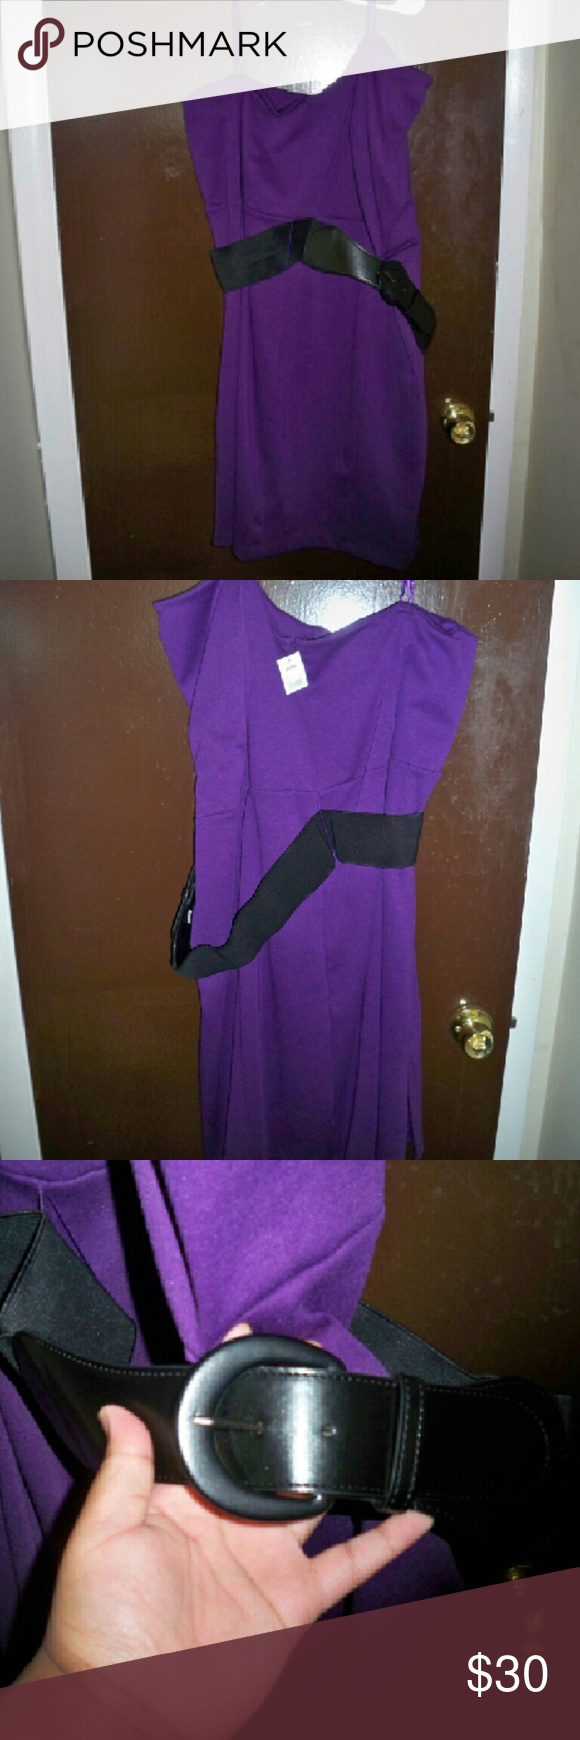 Purple knee length strapless dress Cute purple strapless dress with belt. Has been dry cleaned. Never worn. Dresses Strapless